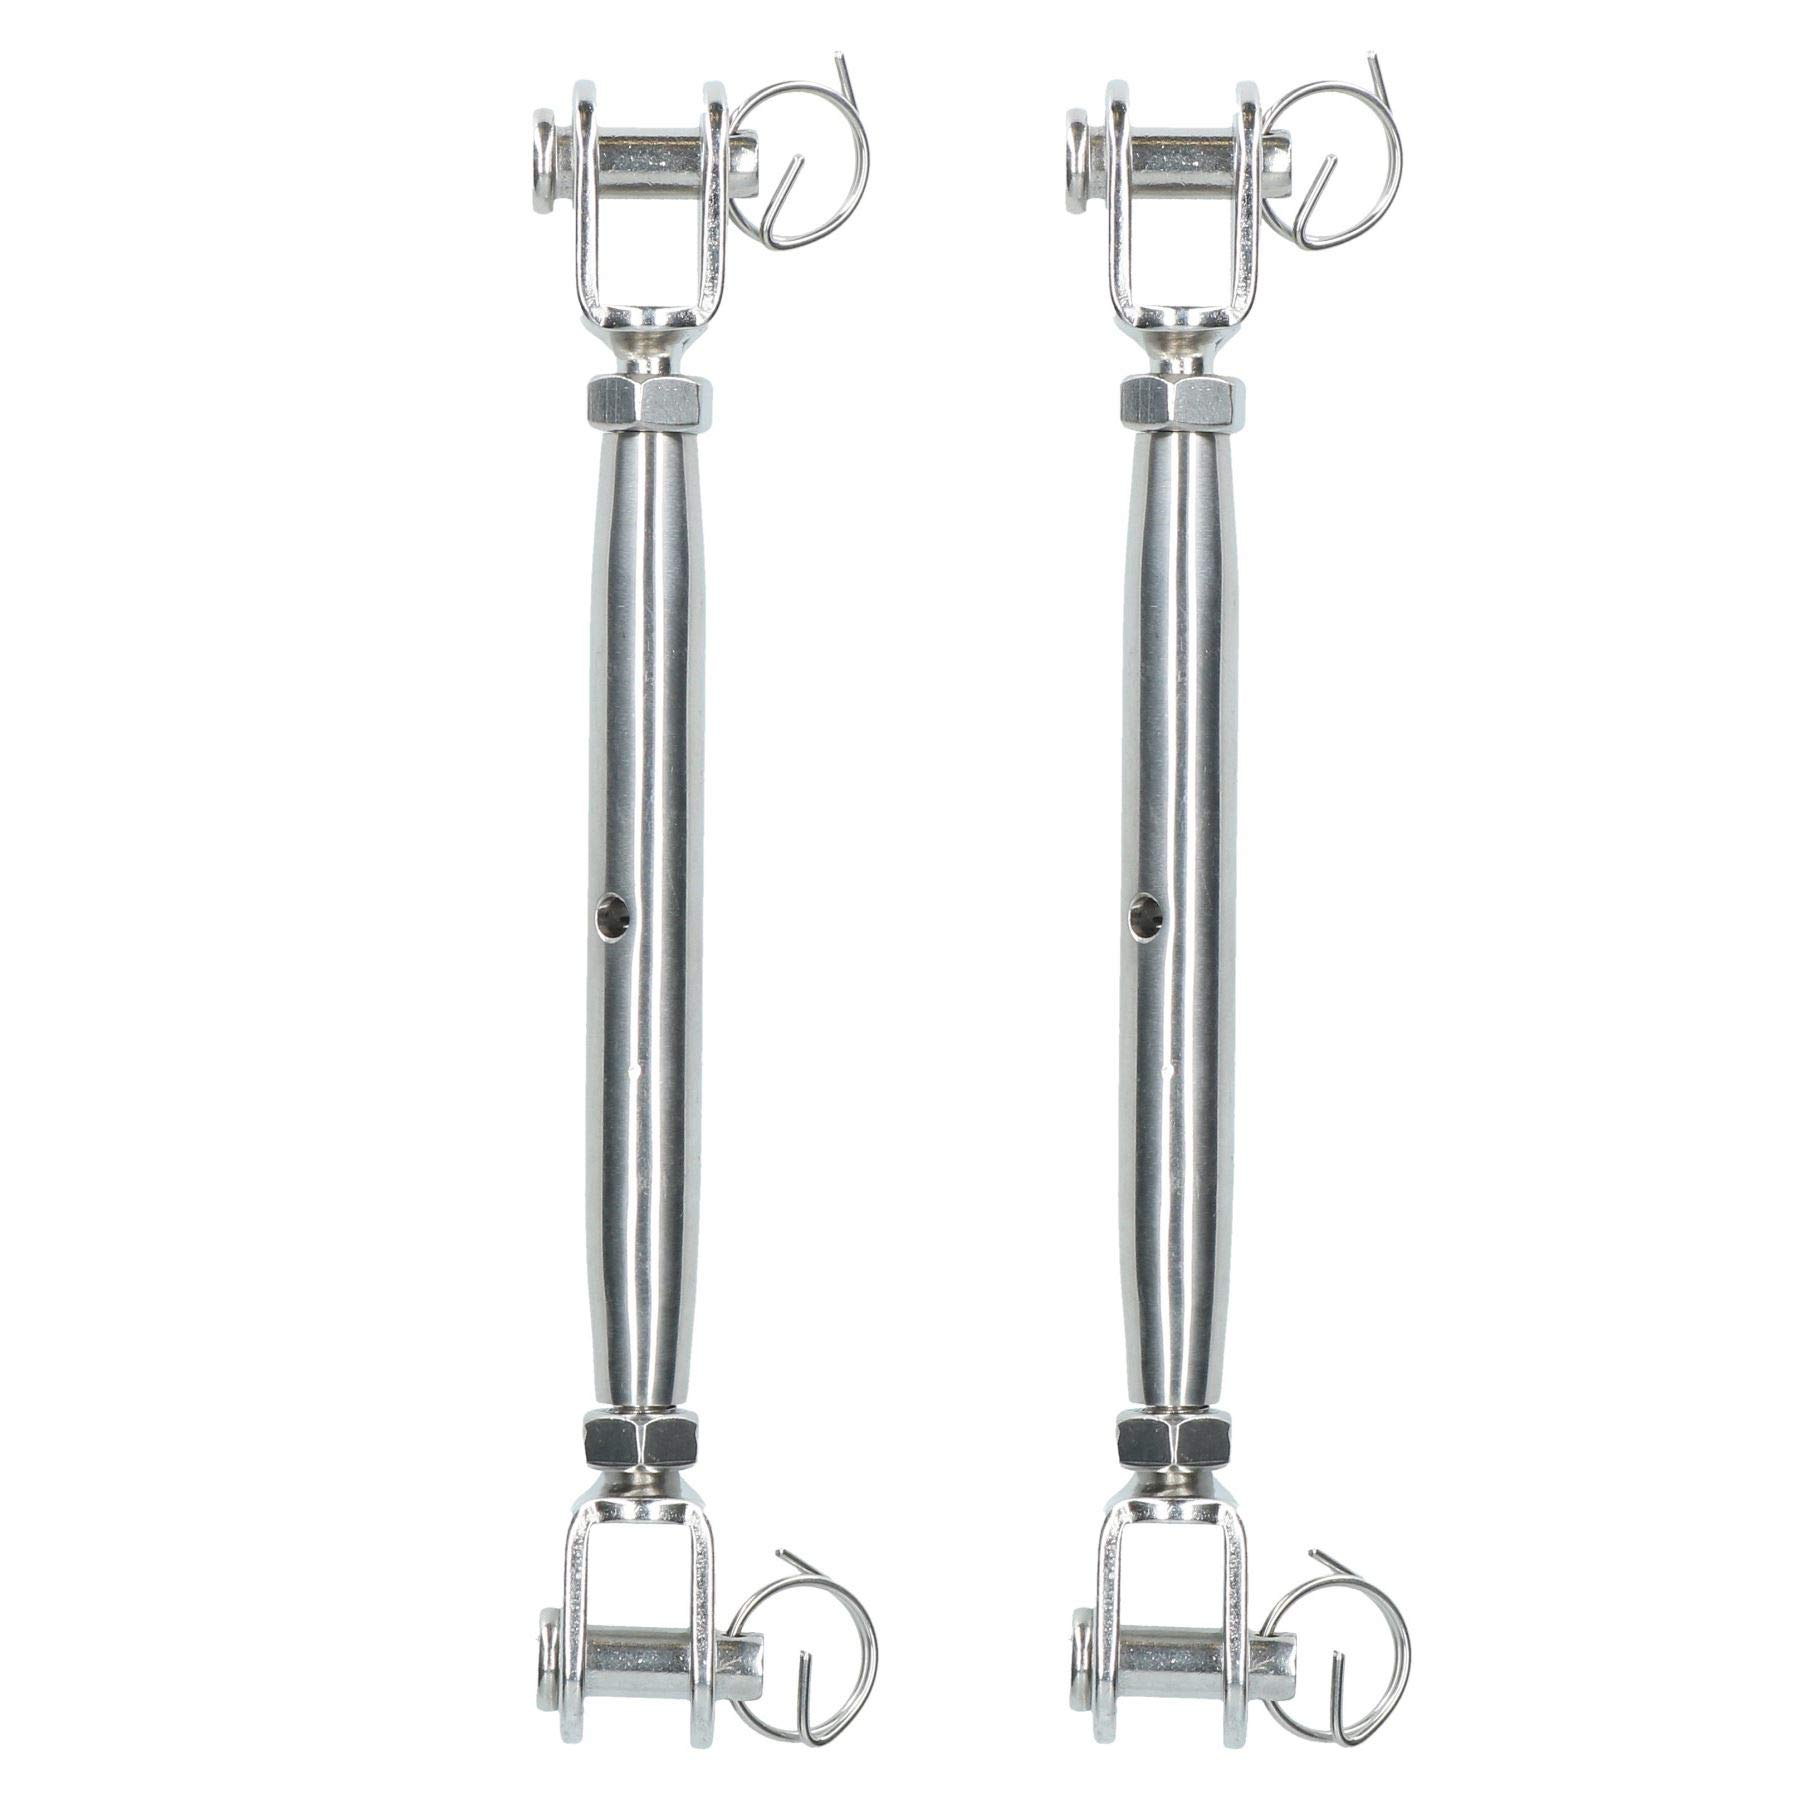 AB Tools-Deacon Rigging Screw 8mm Jaw to Jaw Turnbuckle Straining Marine Stainless 2 Pack by AB Tools-Deacon